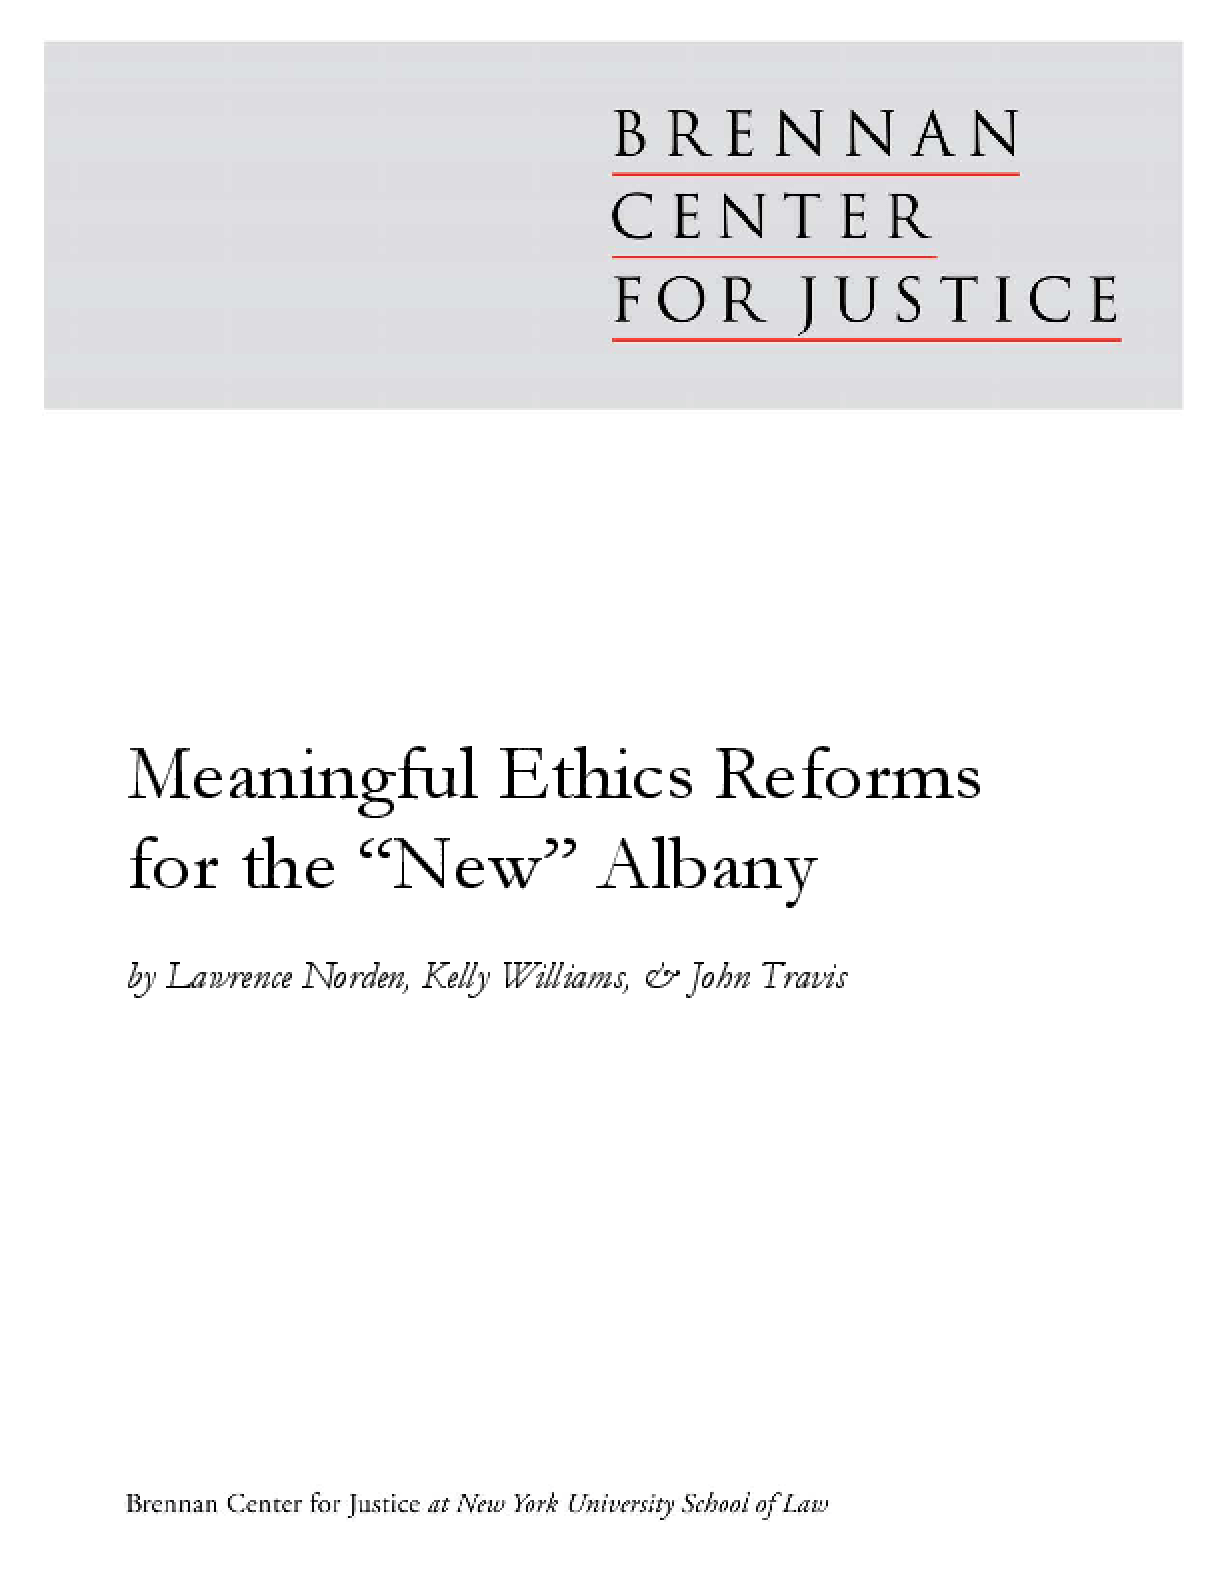 Meaningful Ethics Reforms for the New Albany